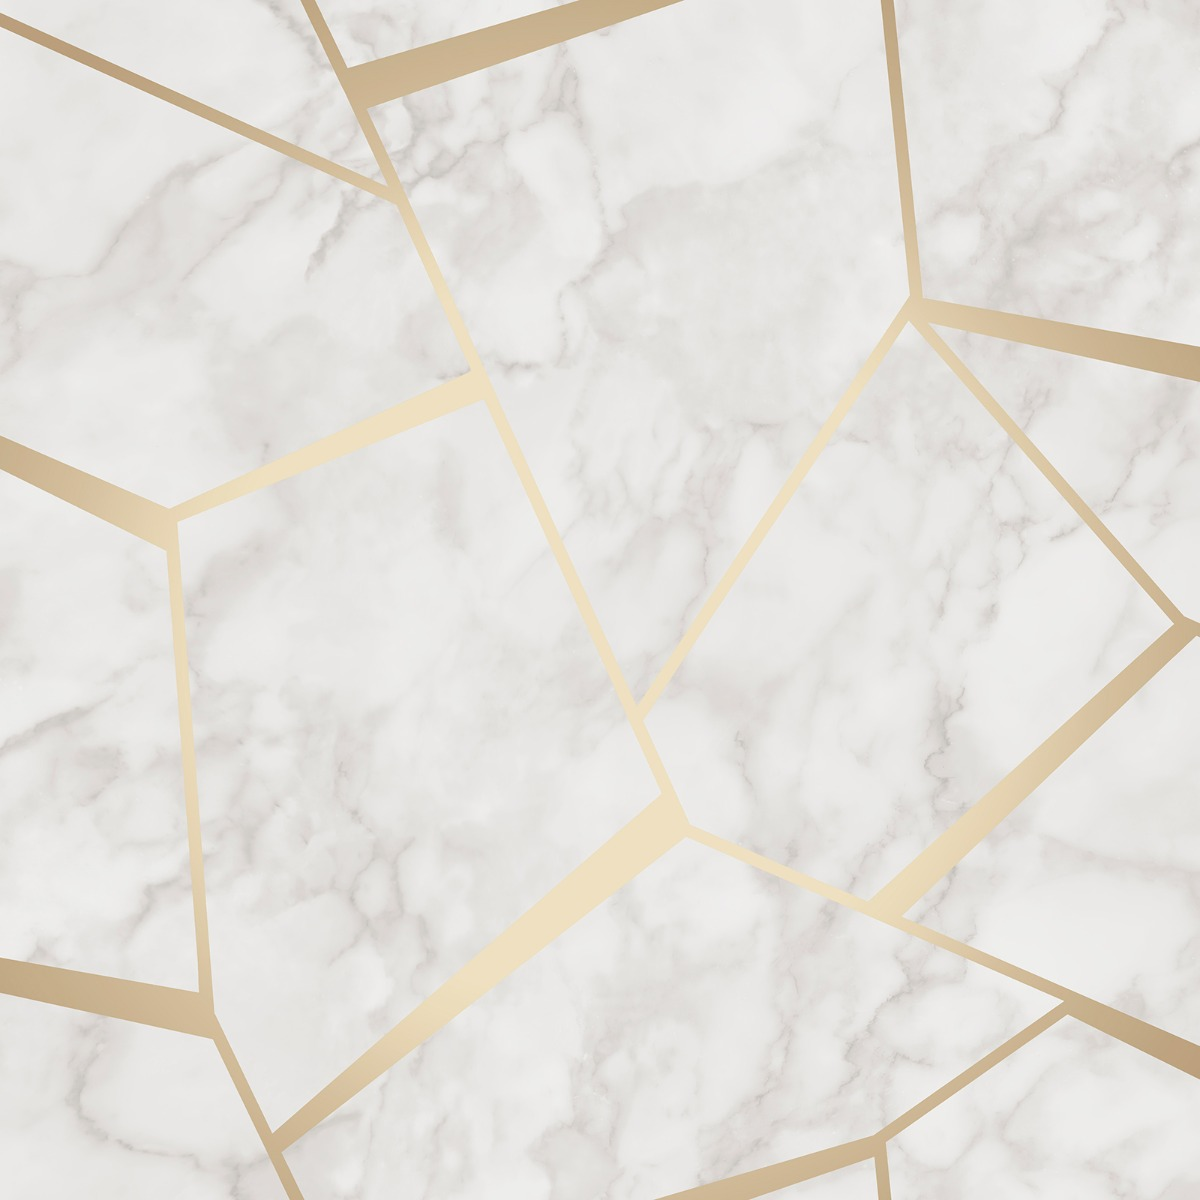 Fractal Geometric Marble Wallpaper Gold And White Fine Decor Fd42265